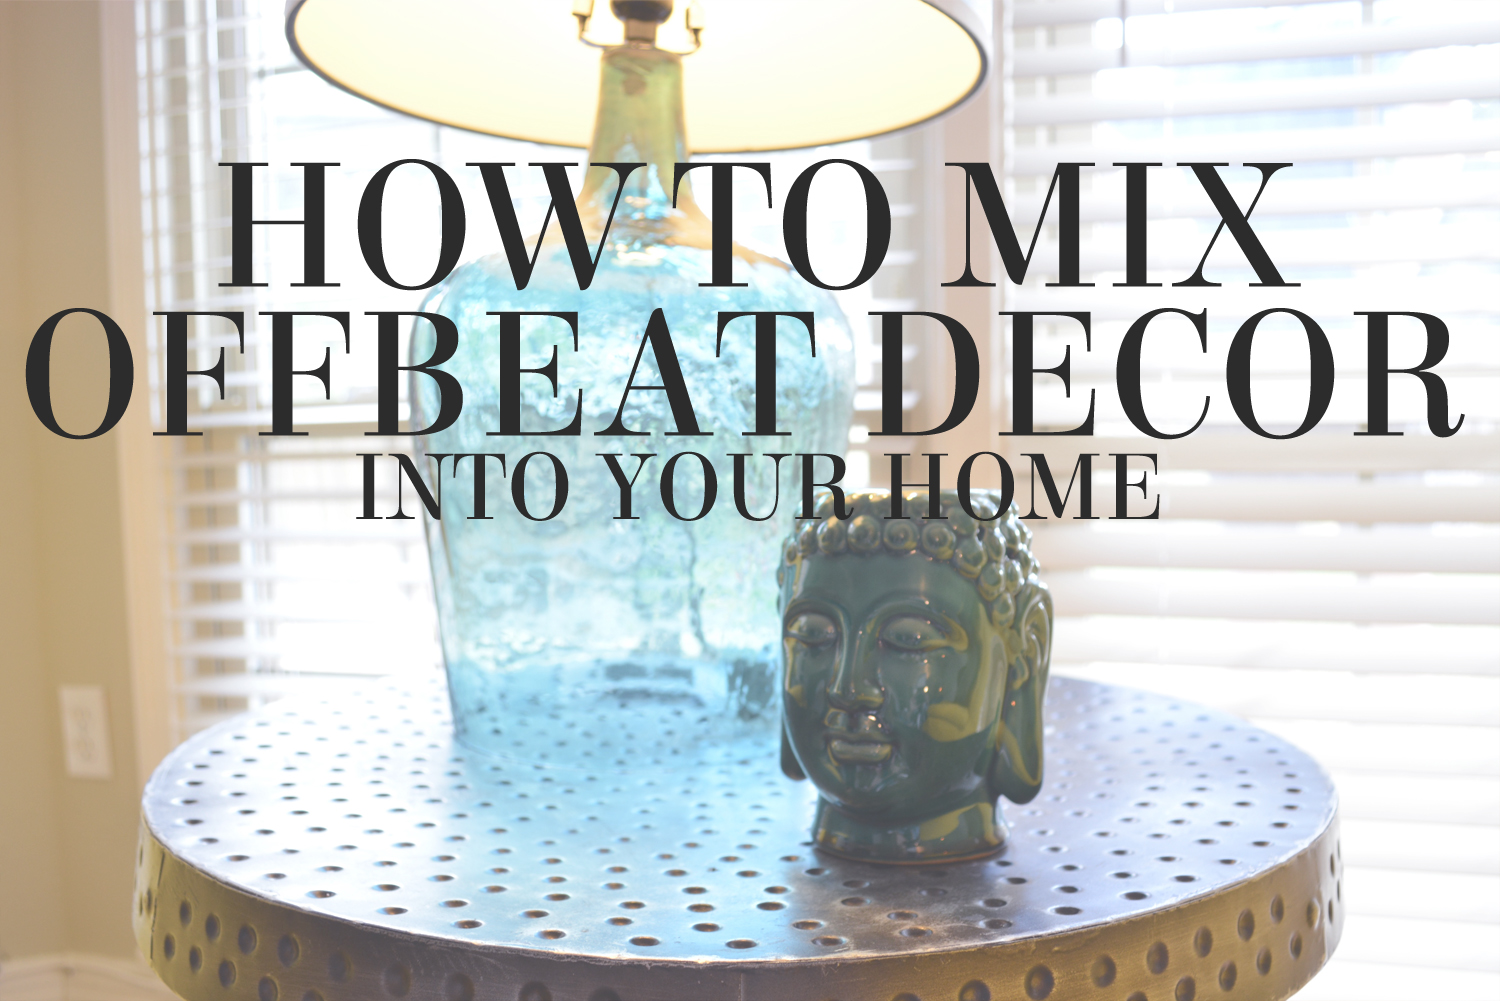 How to Mix Offbeat Decor into Your Home